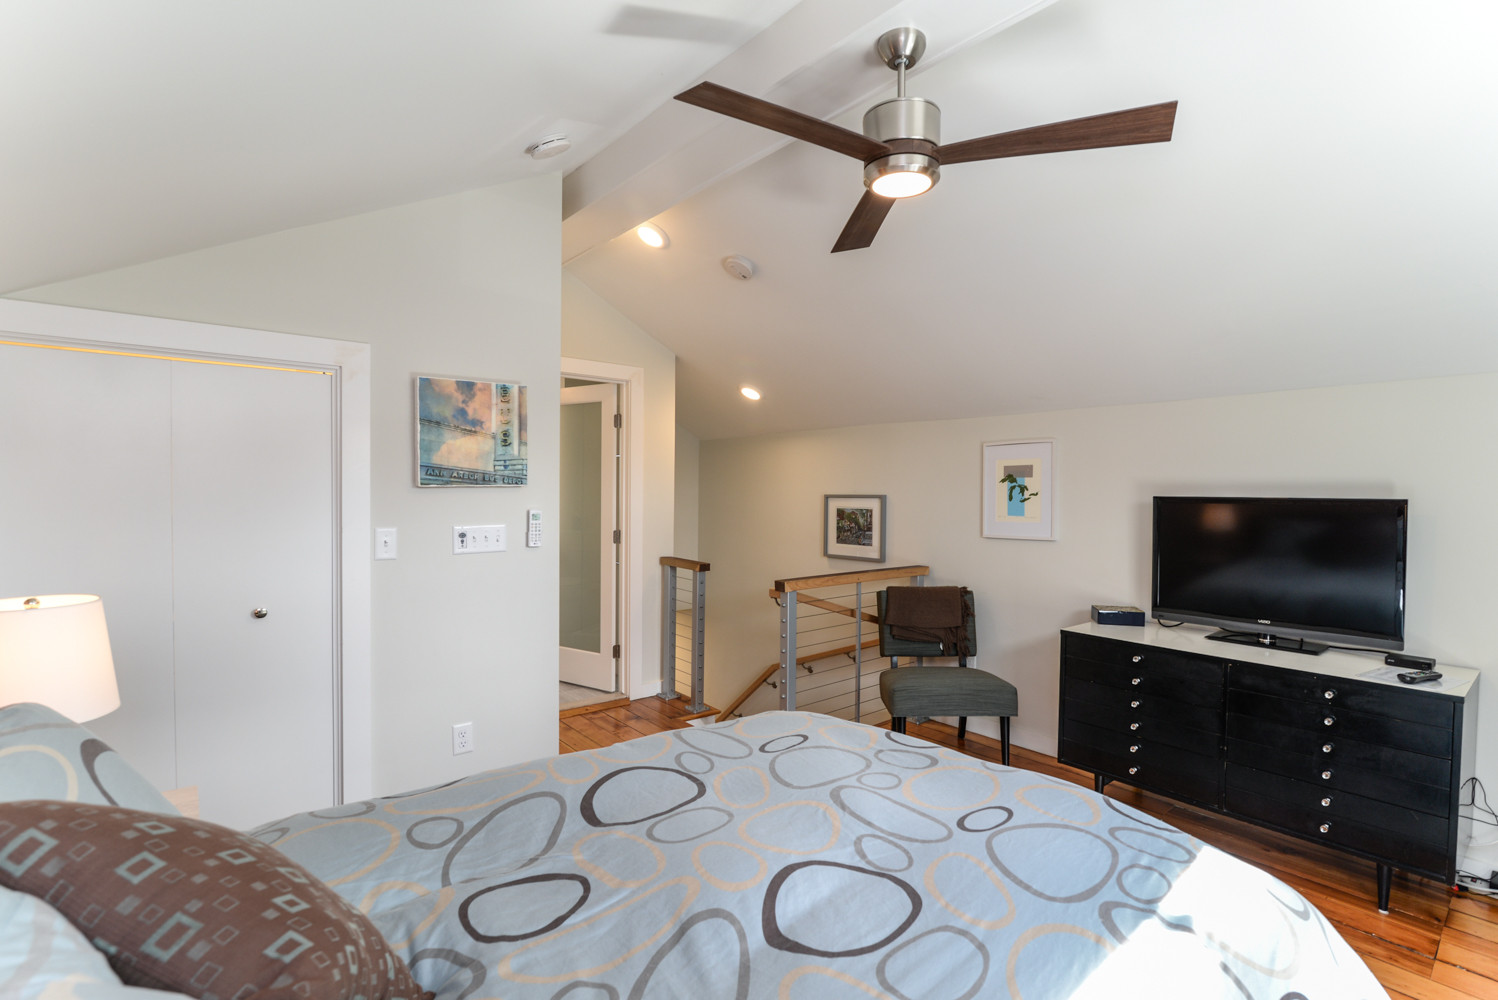 The staircase leads directly to the master bedroom area, with an attached bathroom shown in the background. Although smaller in scale, the overall feel is open and airy with plenty of storage in the u